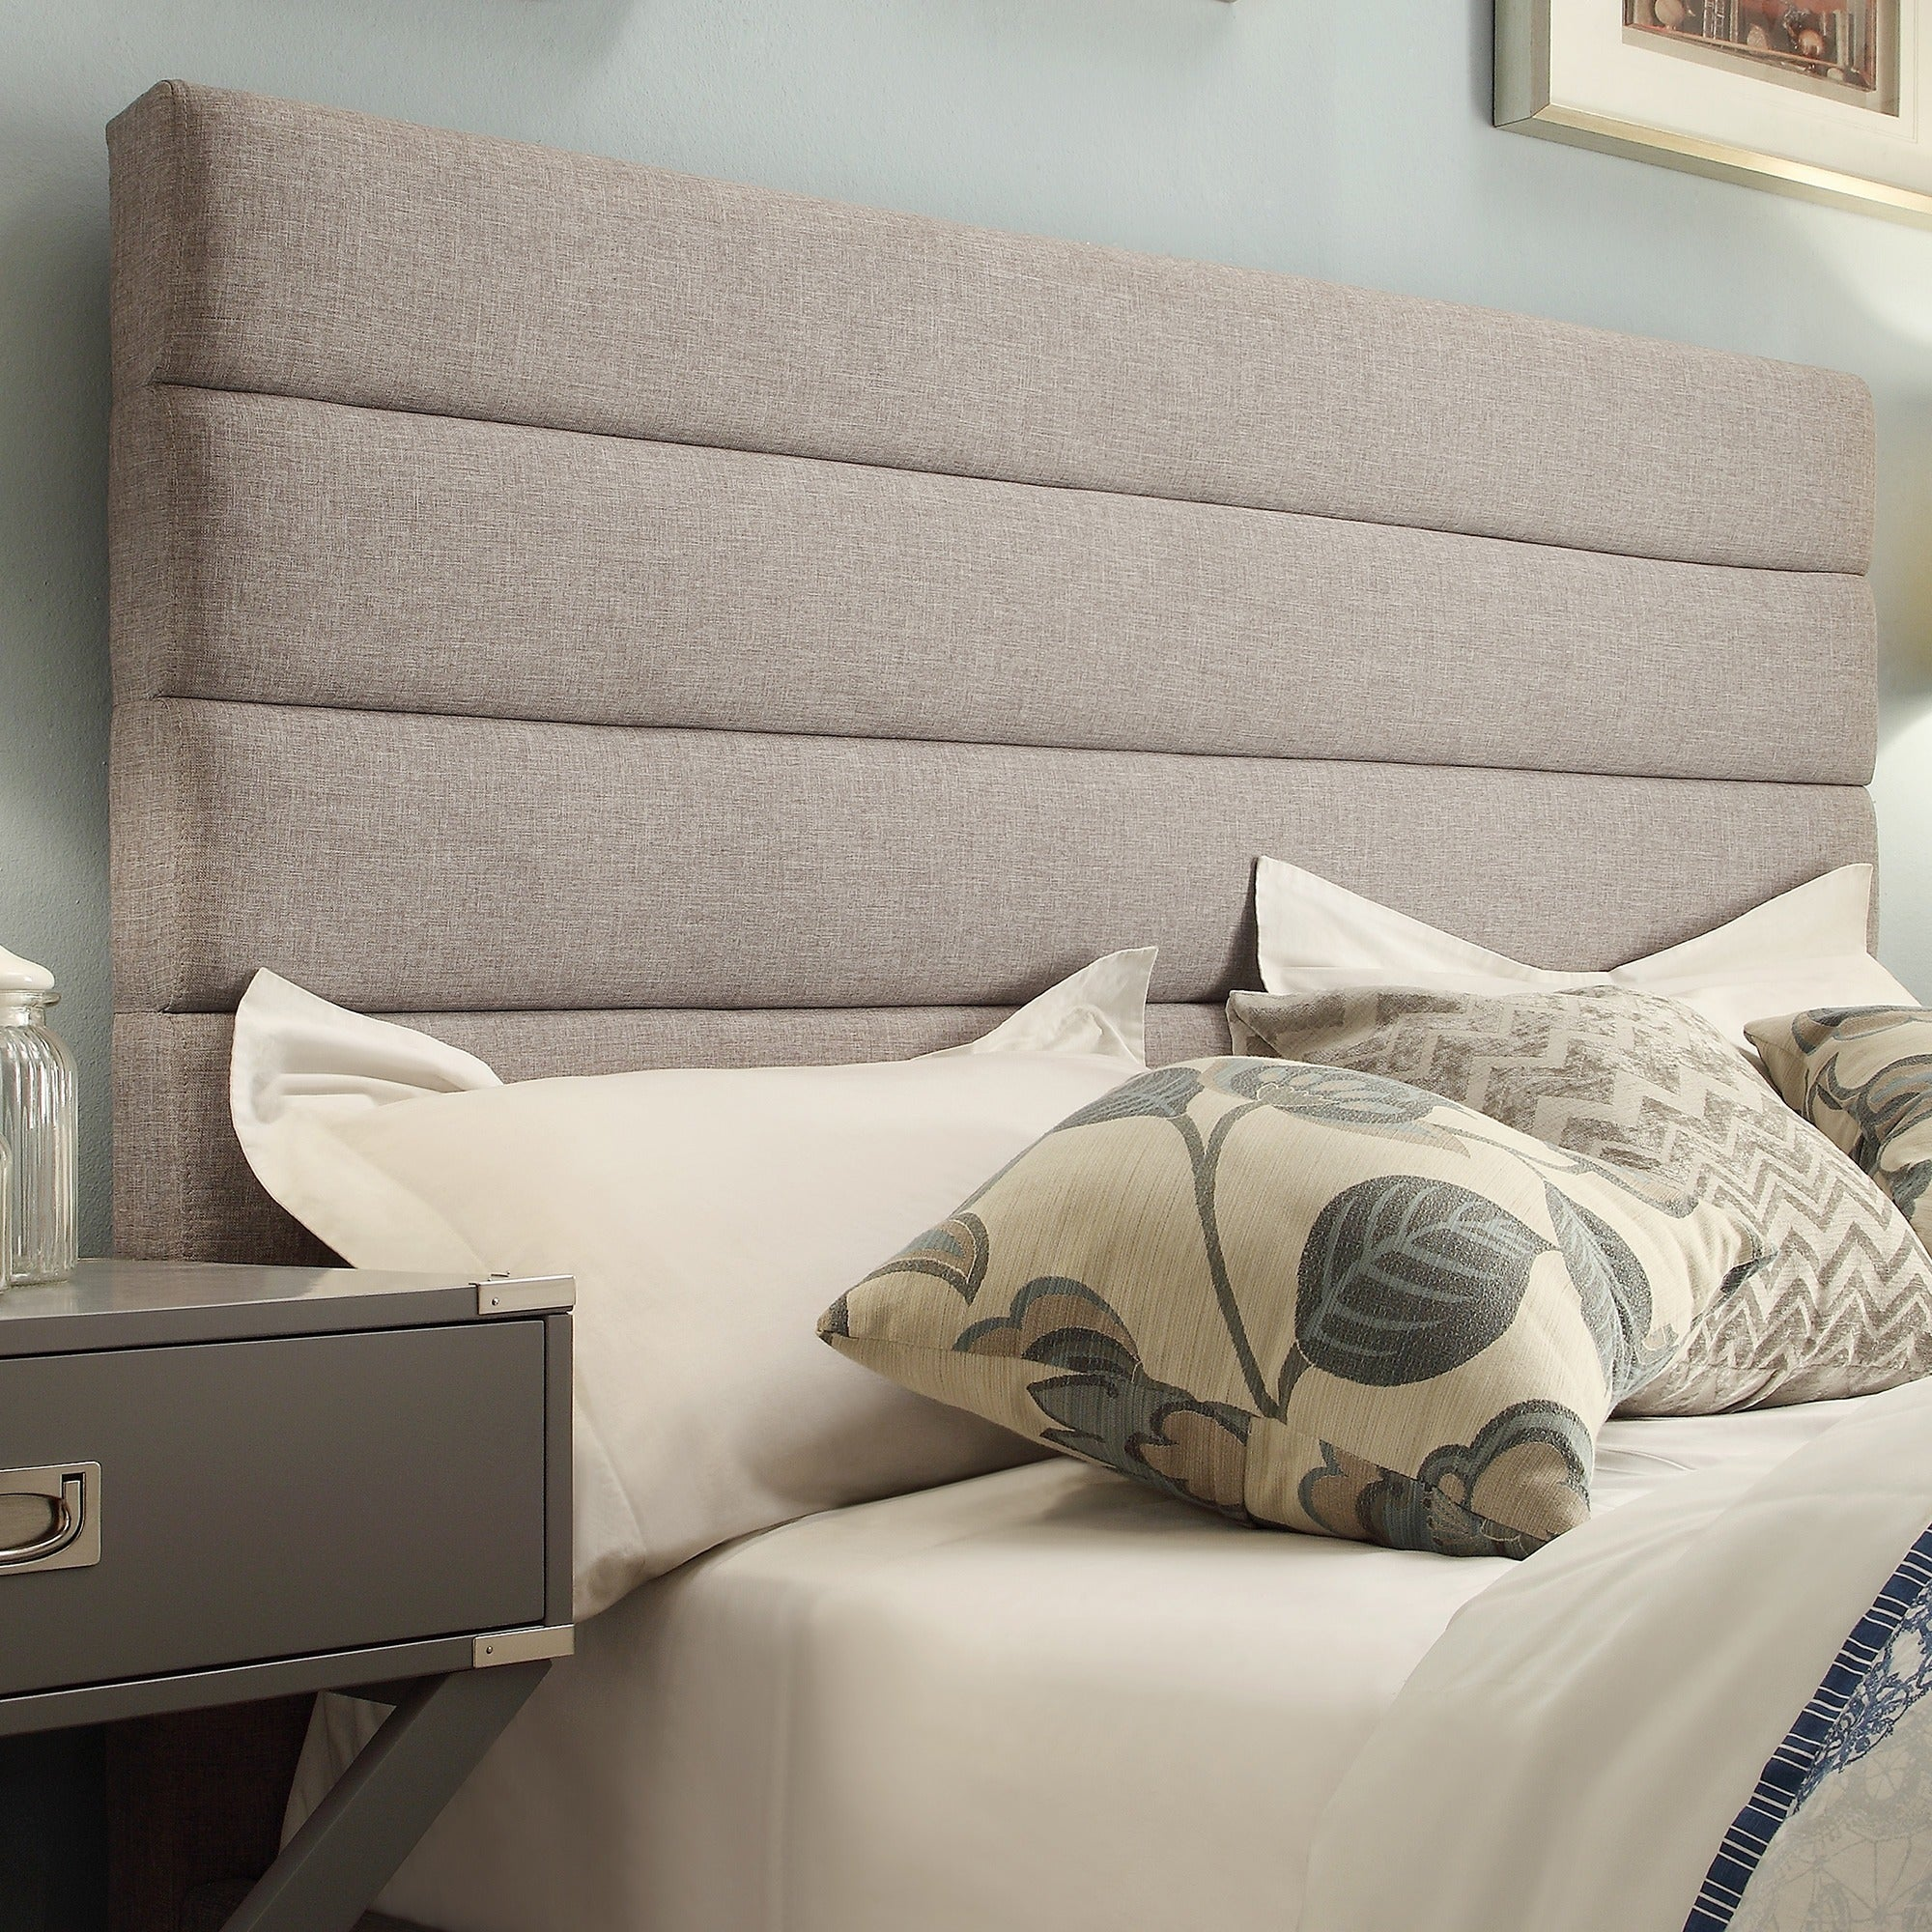 Corbett Horizontal Tufted Gray Linen Upholstered Queen-size Headboard by  iNSPIRE Q Classic - Free Shipping Today - Overstock.com - 17150410